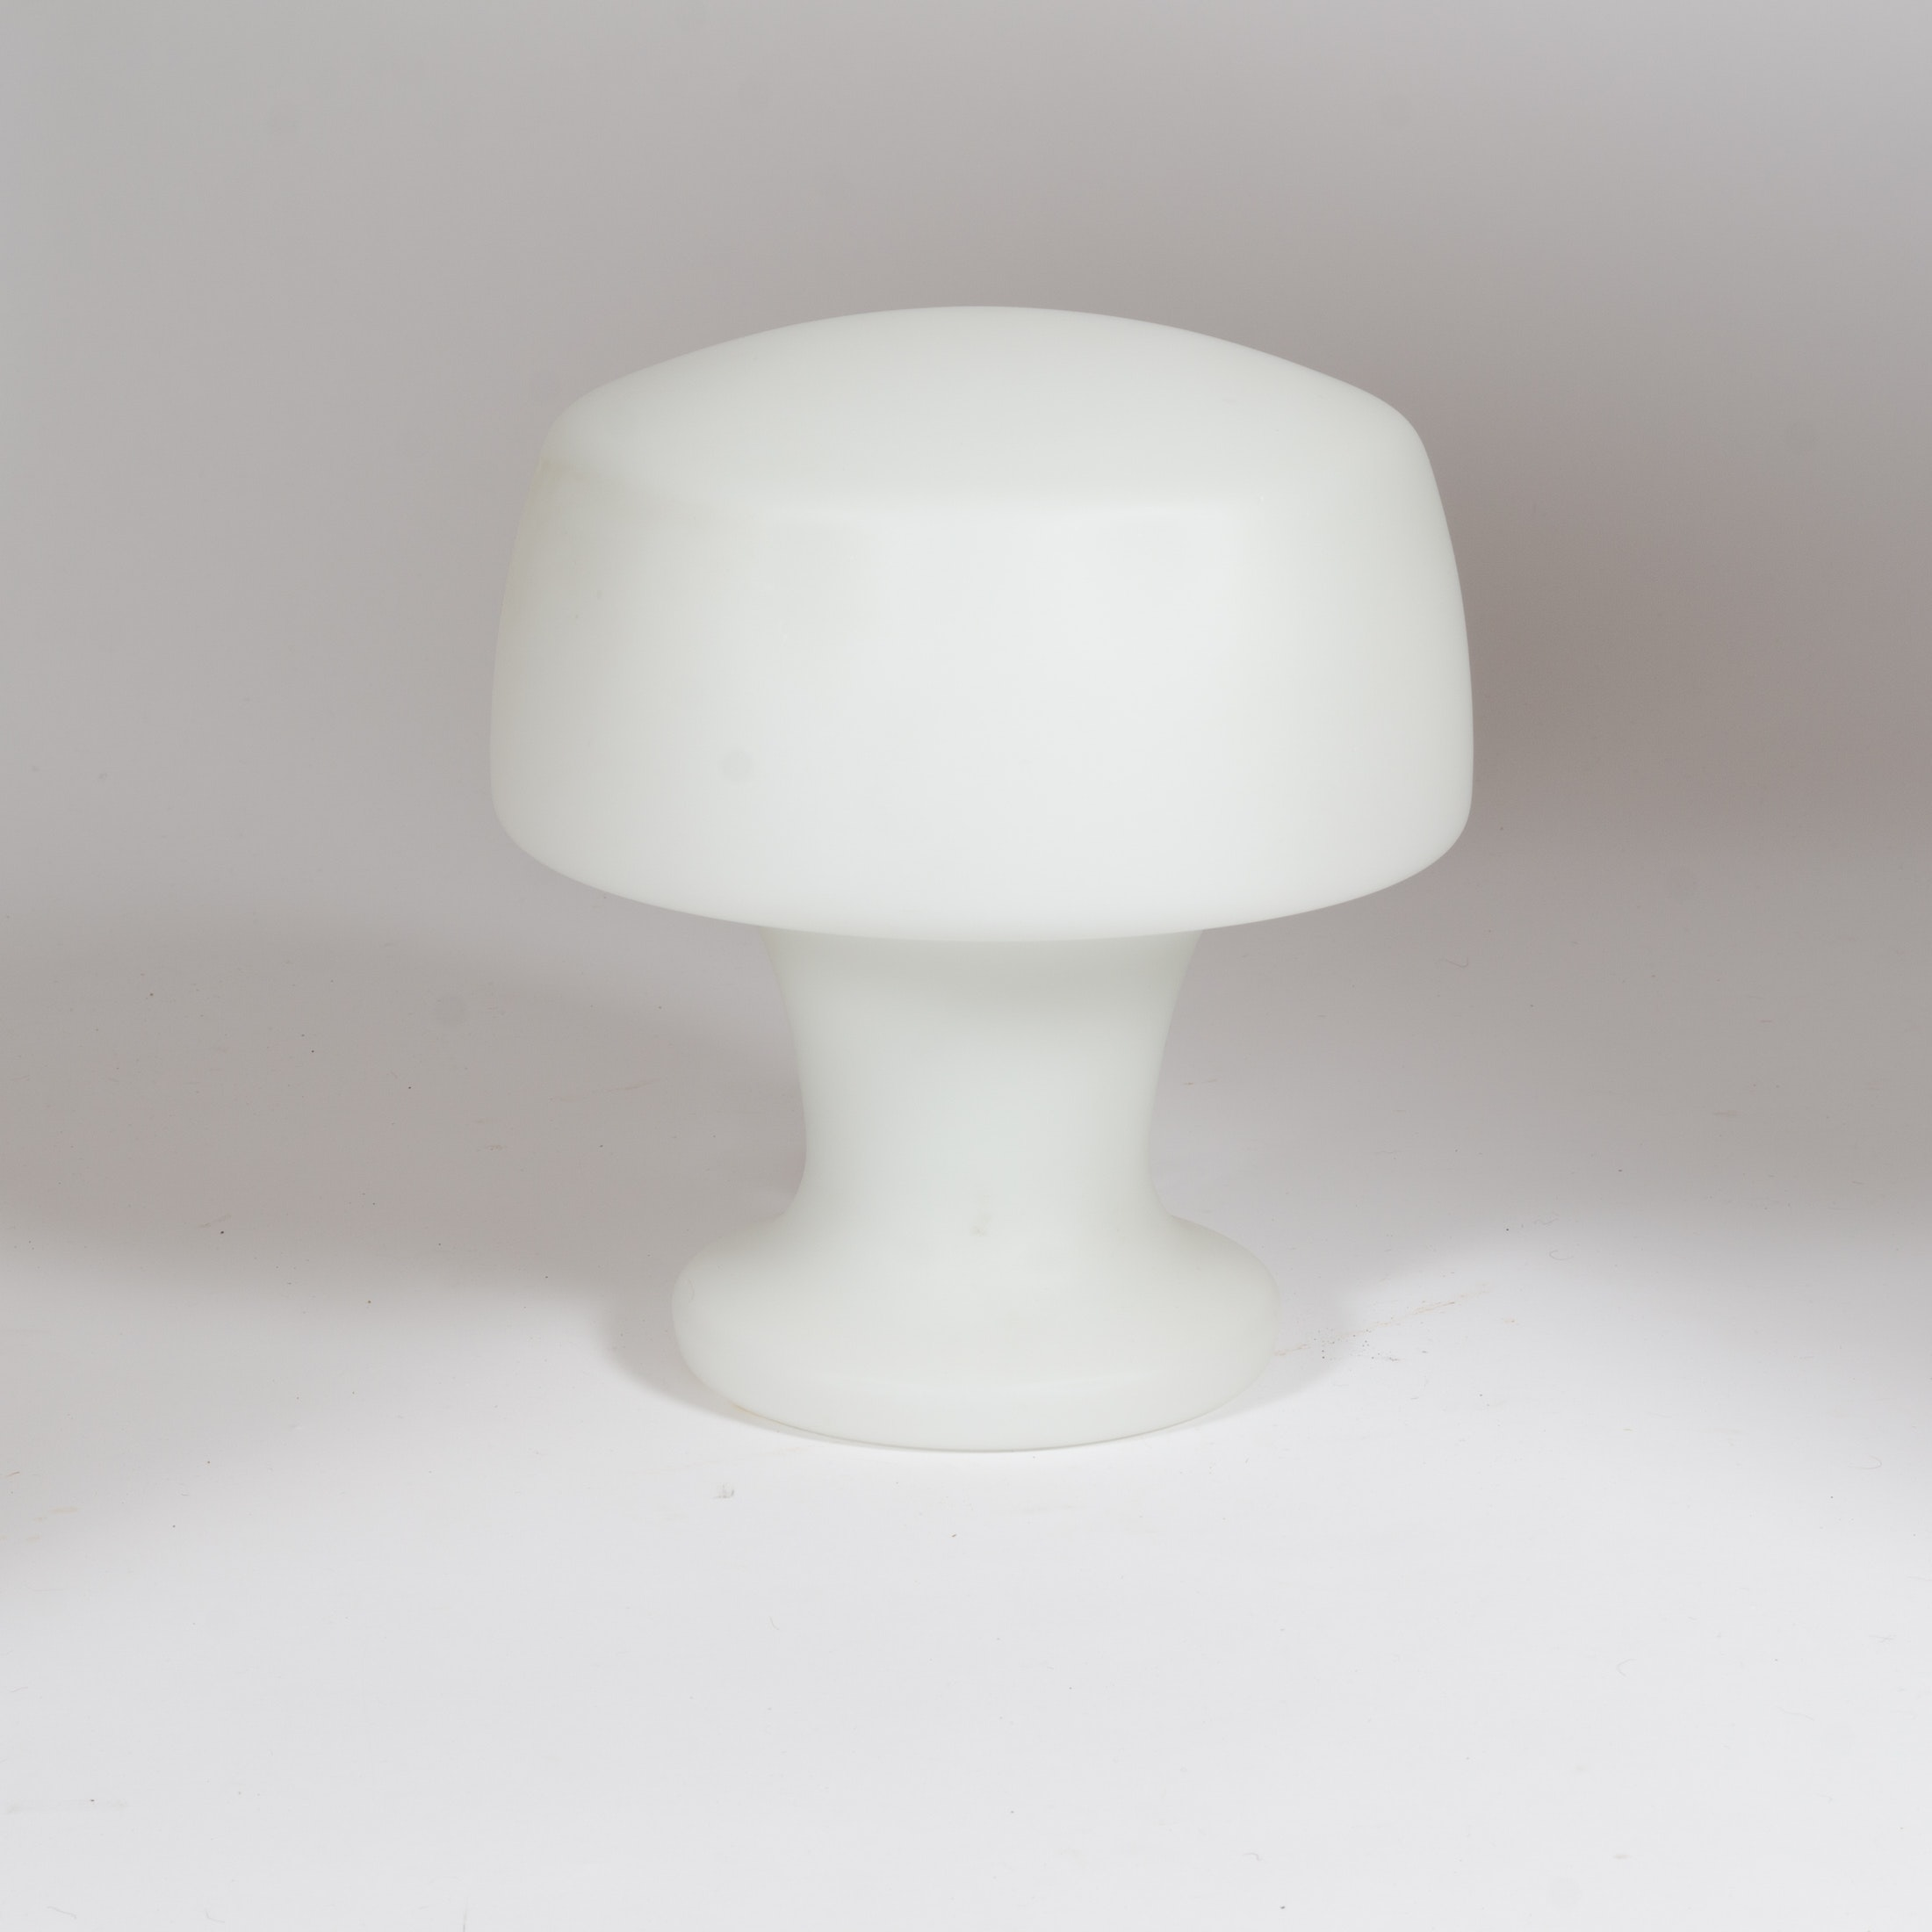 Mid Century Modern Frosted Glass Mushroom Lamp by the Laurel Lamp Co.